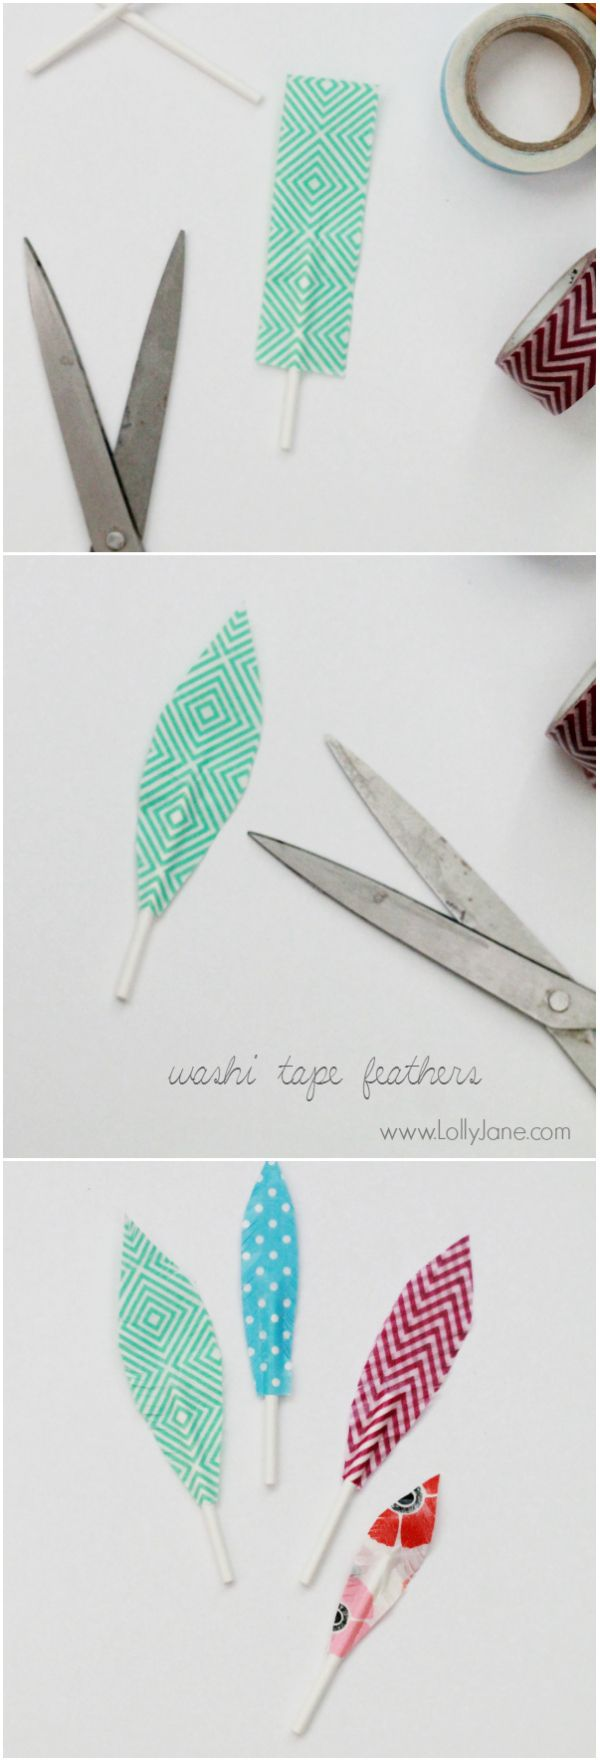 DIY | washi tape feathers, so cute + easy to make!